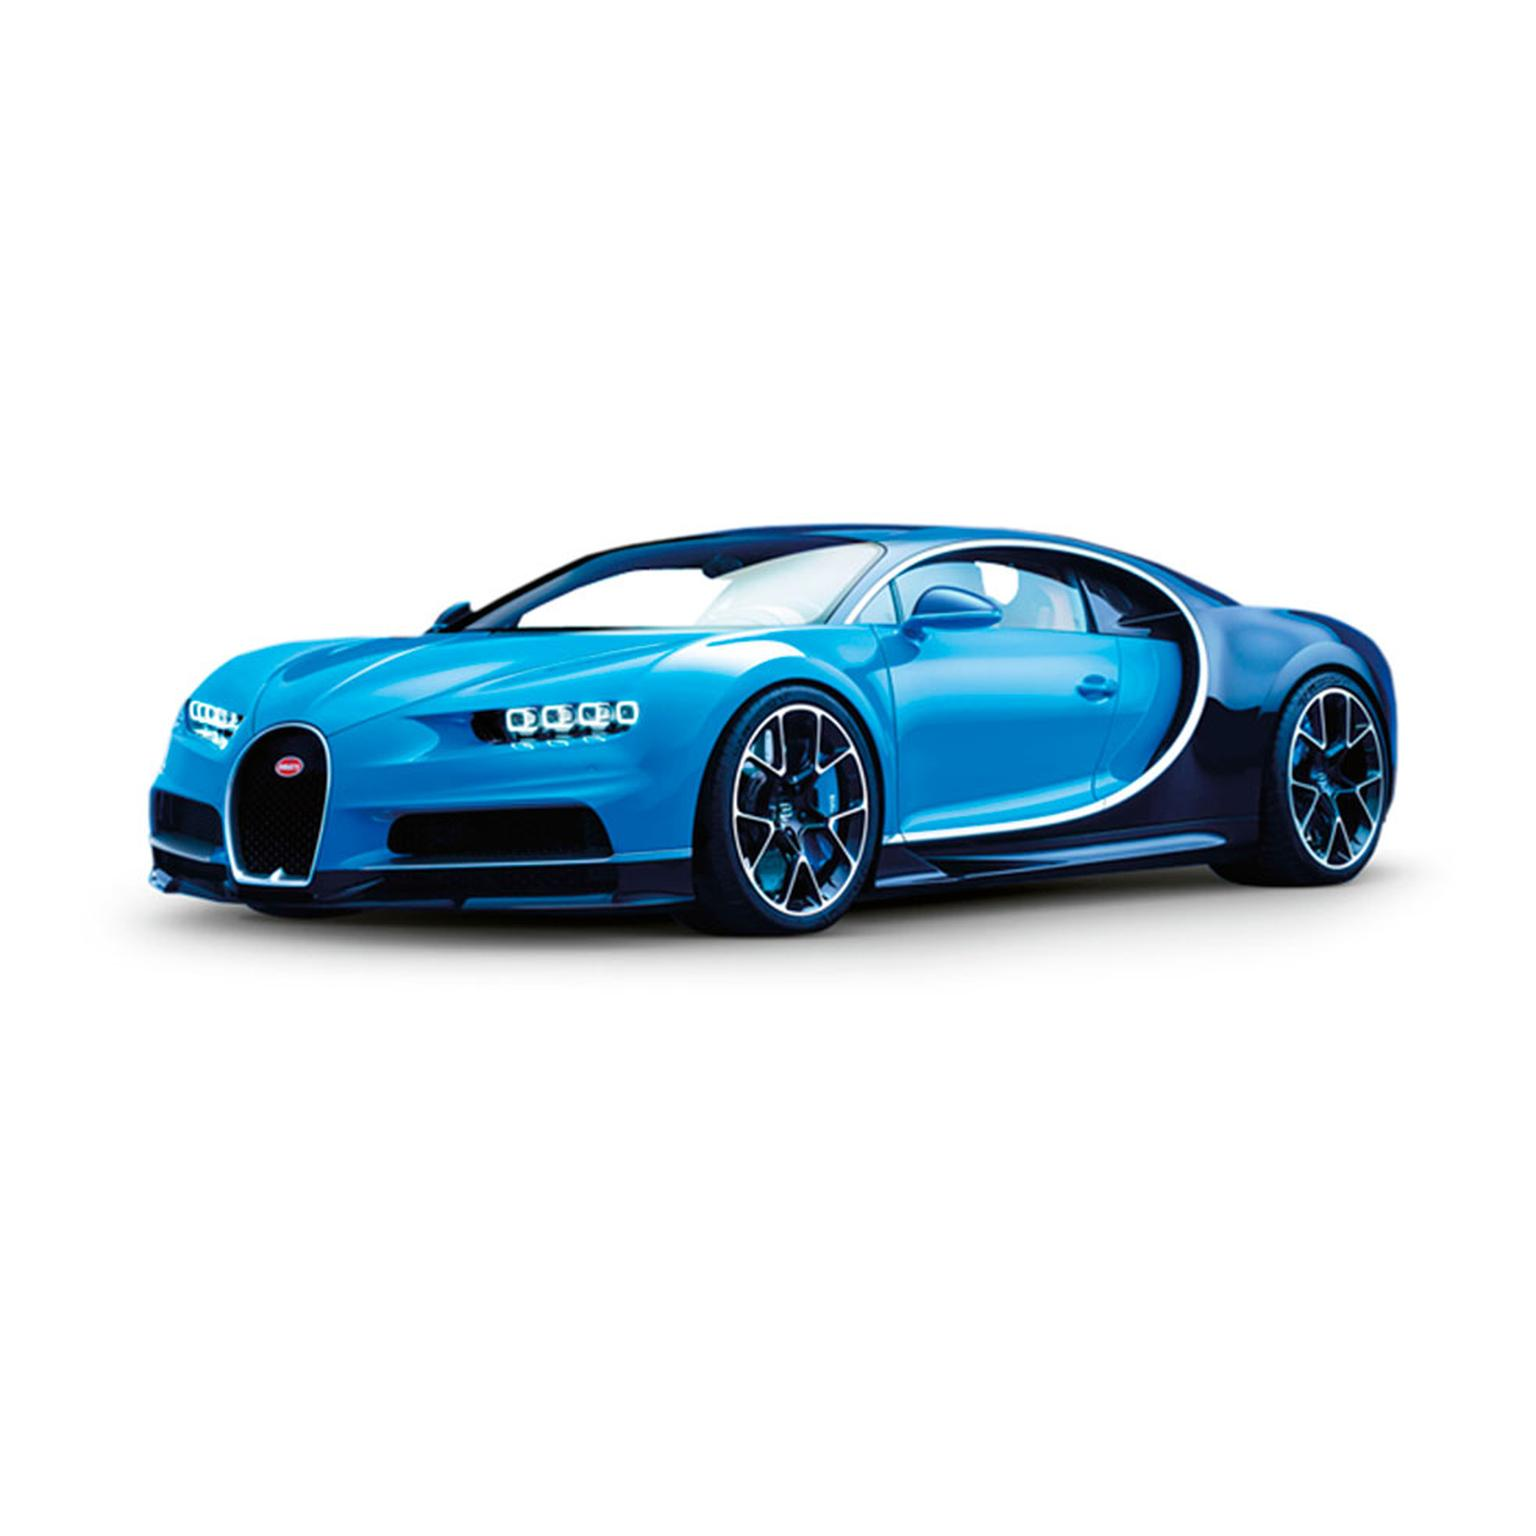 Bugatti Chiron, the inspiration for Parmigiani Fleurier's watch